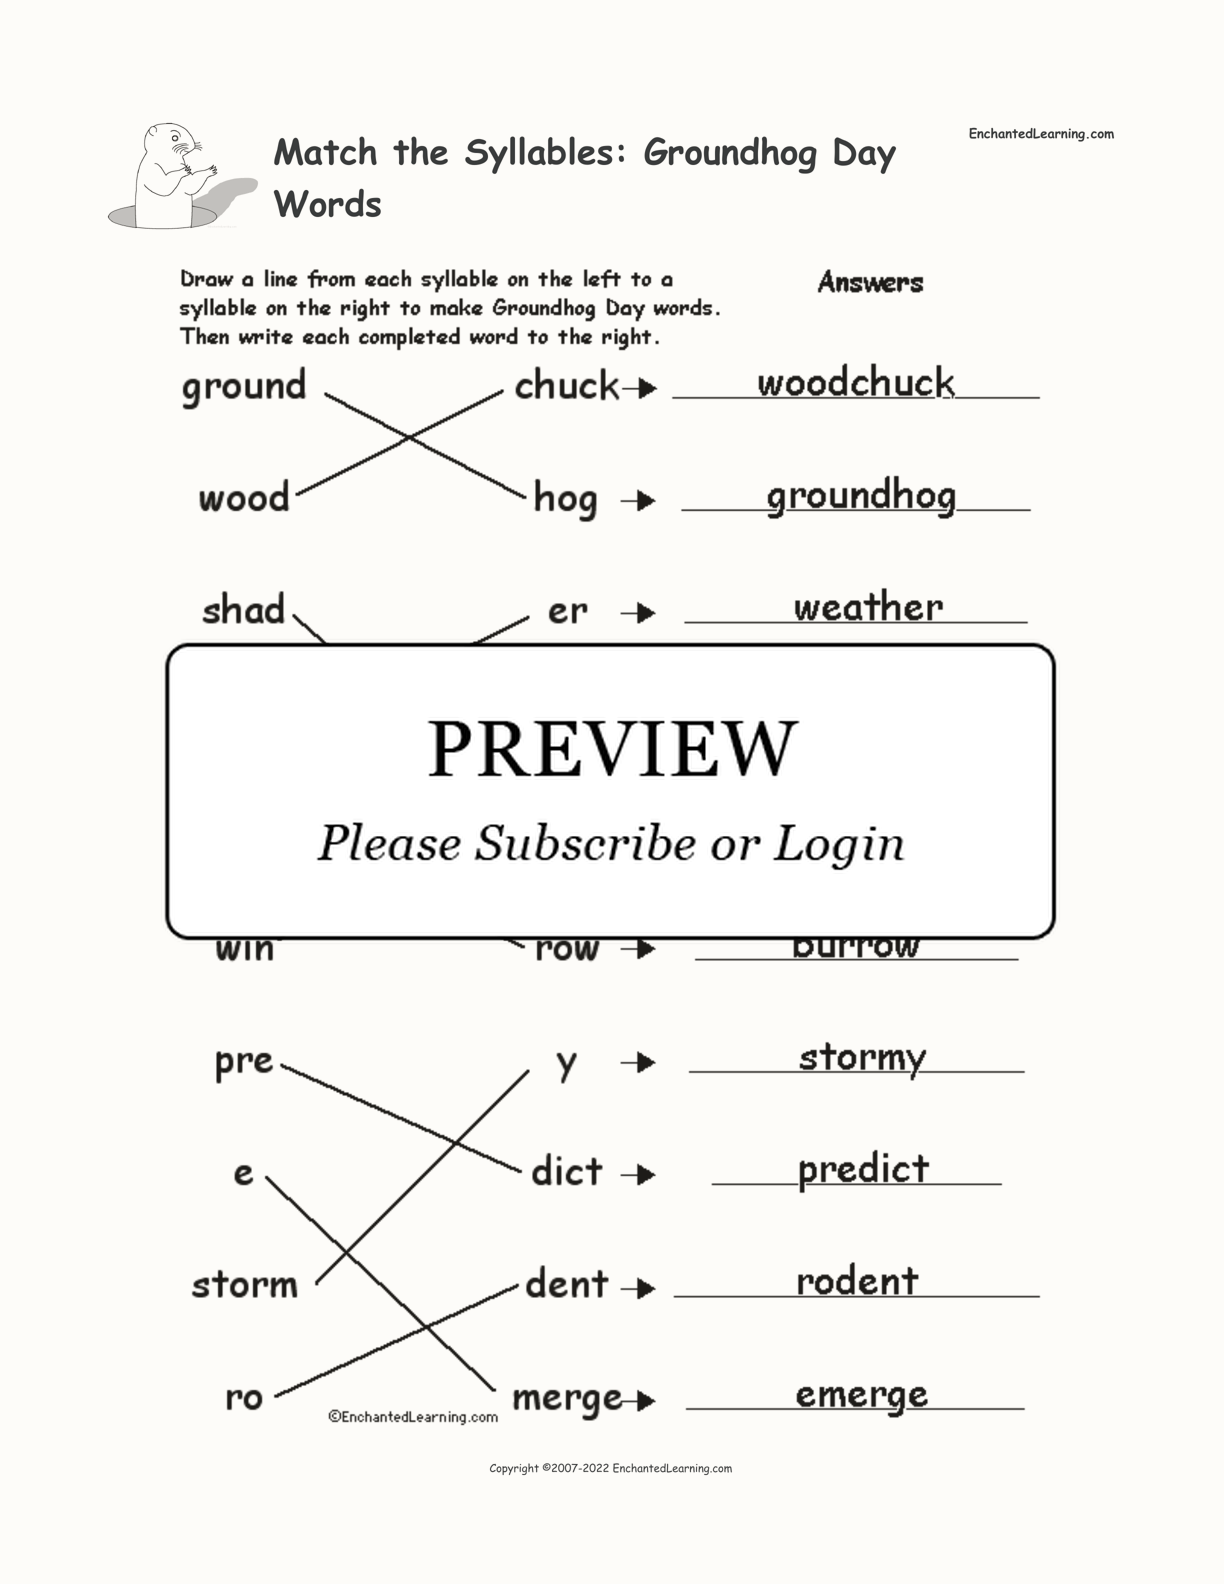 Match the Syllables: Groundhog Day Words interactive worksheet page 2